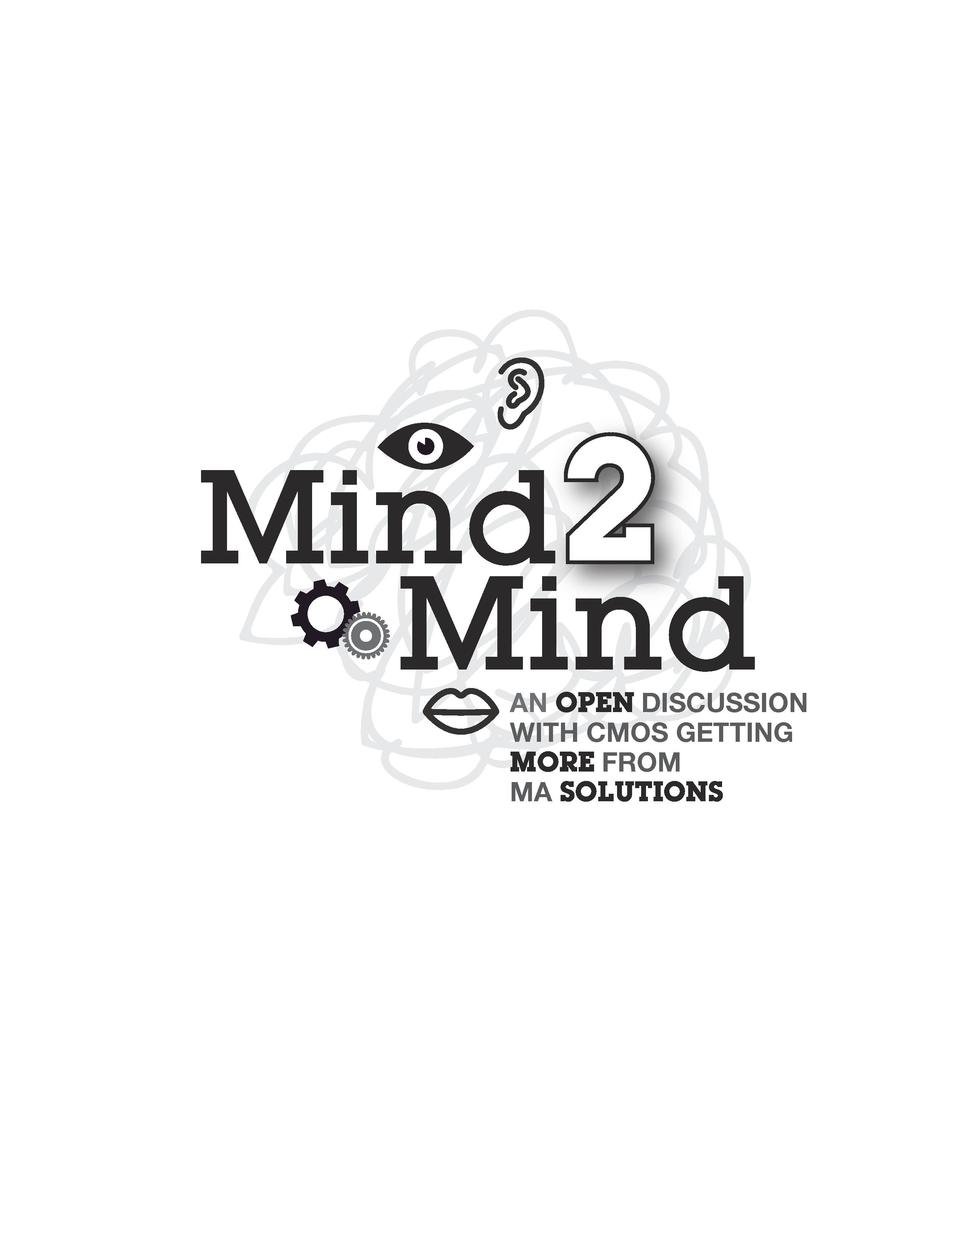 Mind2 Mind  AN OPEN DISCUSSION WITH CMOS GETTING MORE FROM MA SOLUTIONS